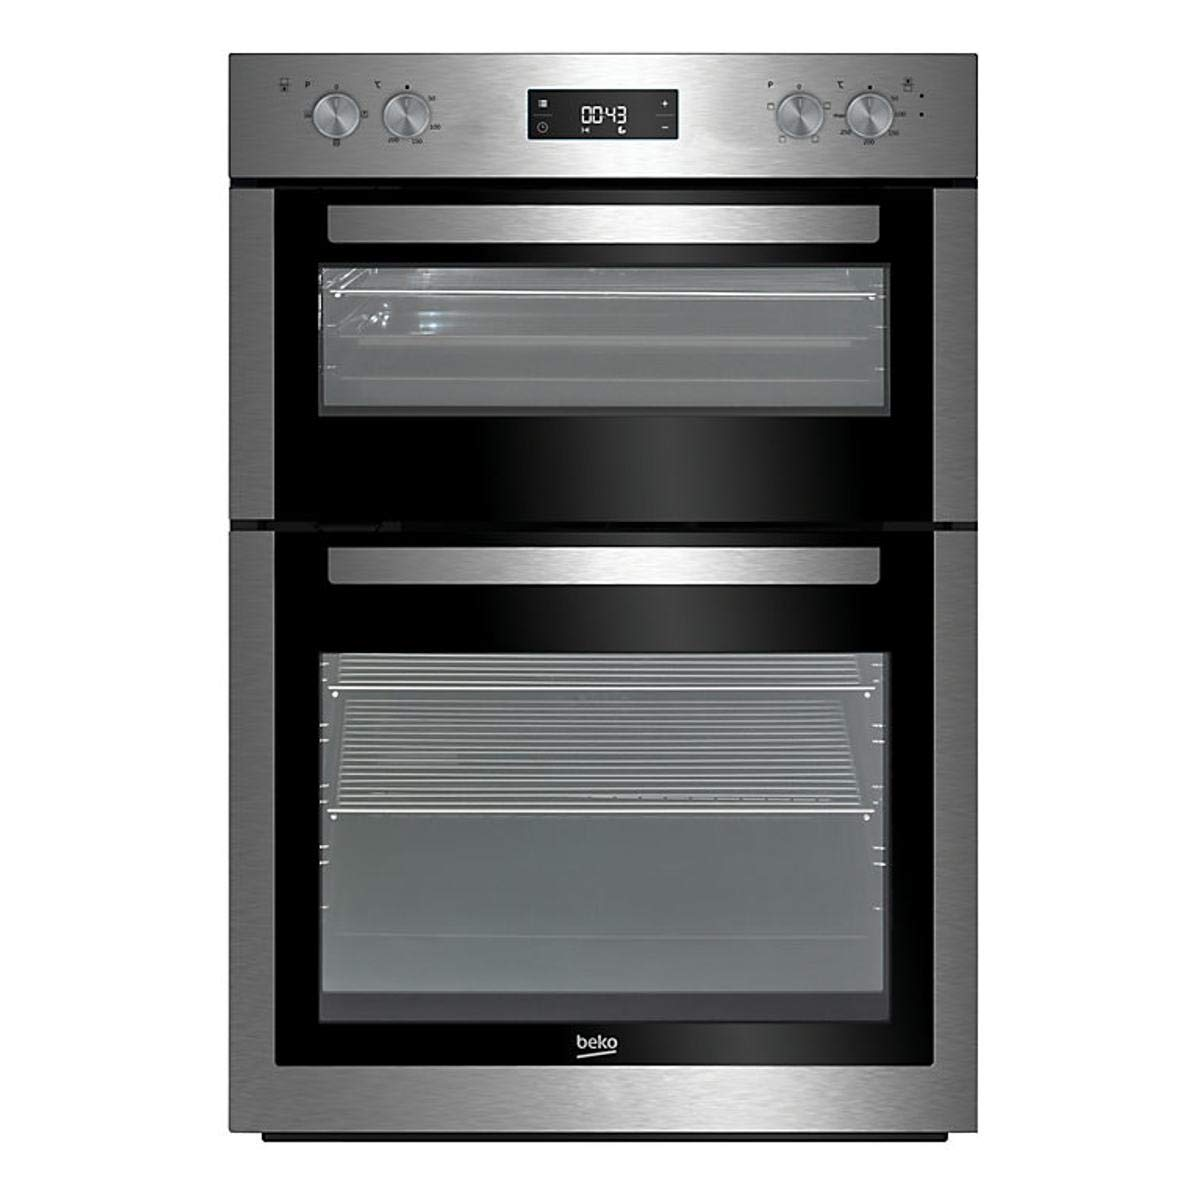 Beko BDF26300X Fanned Electric Built-in Double Oven Stainless Steel